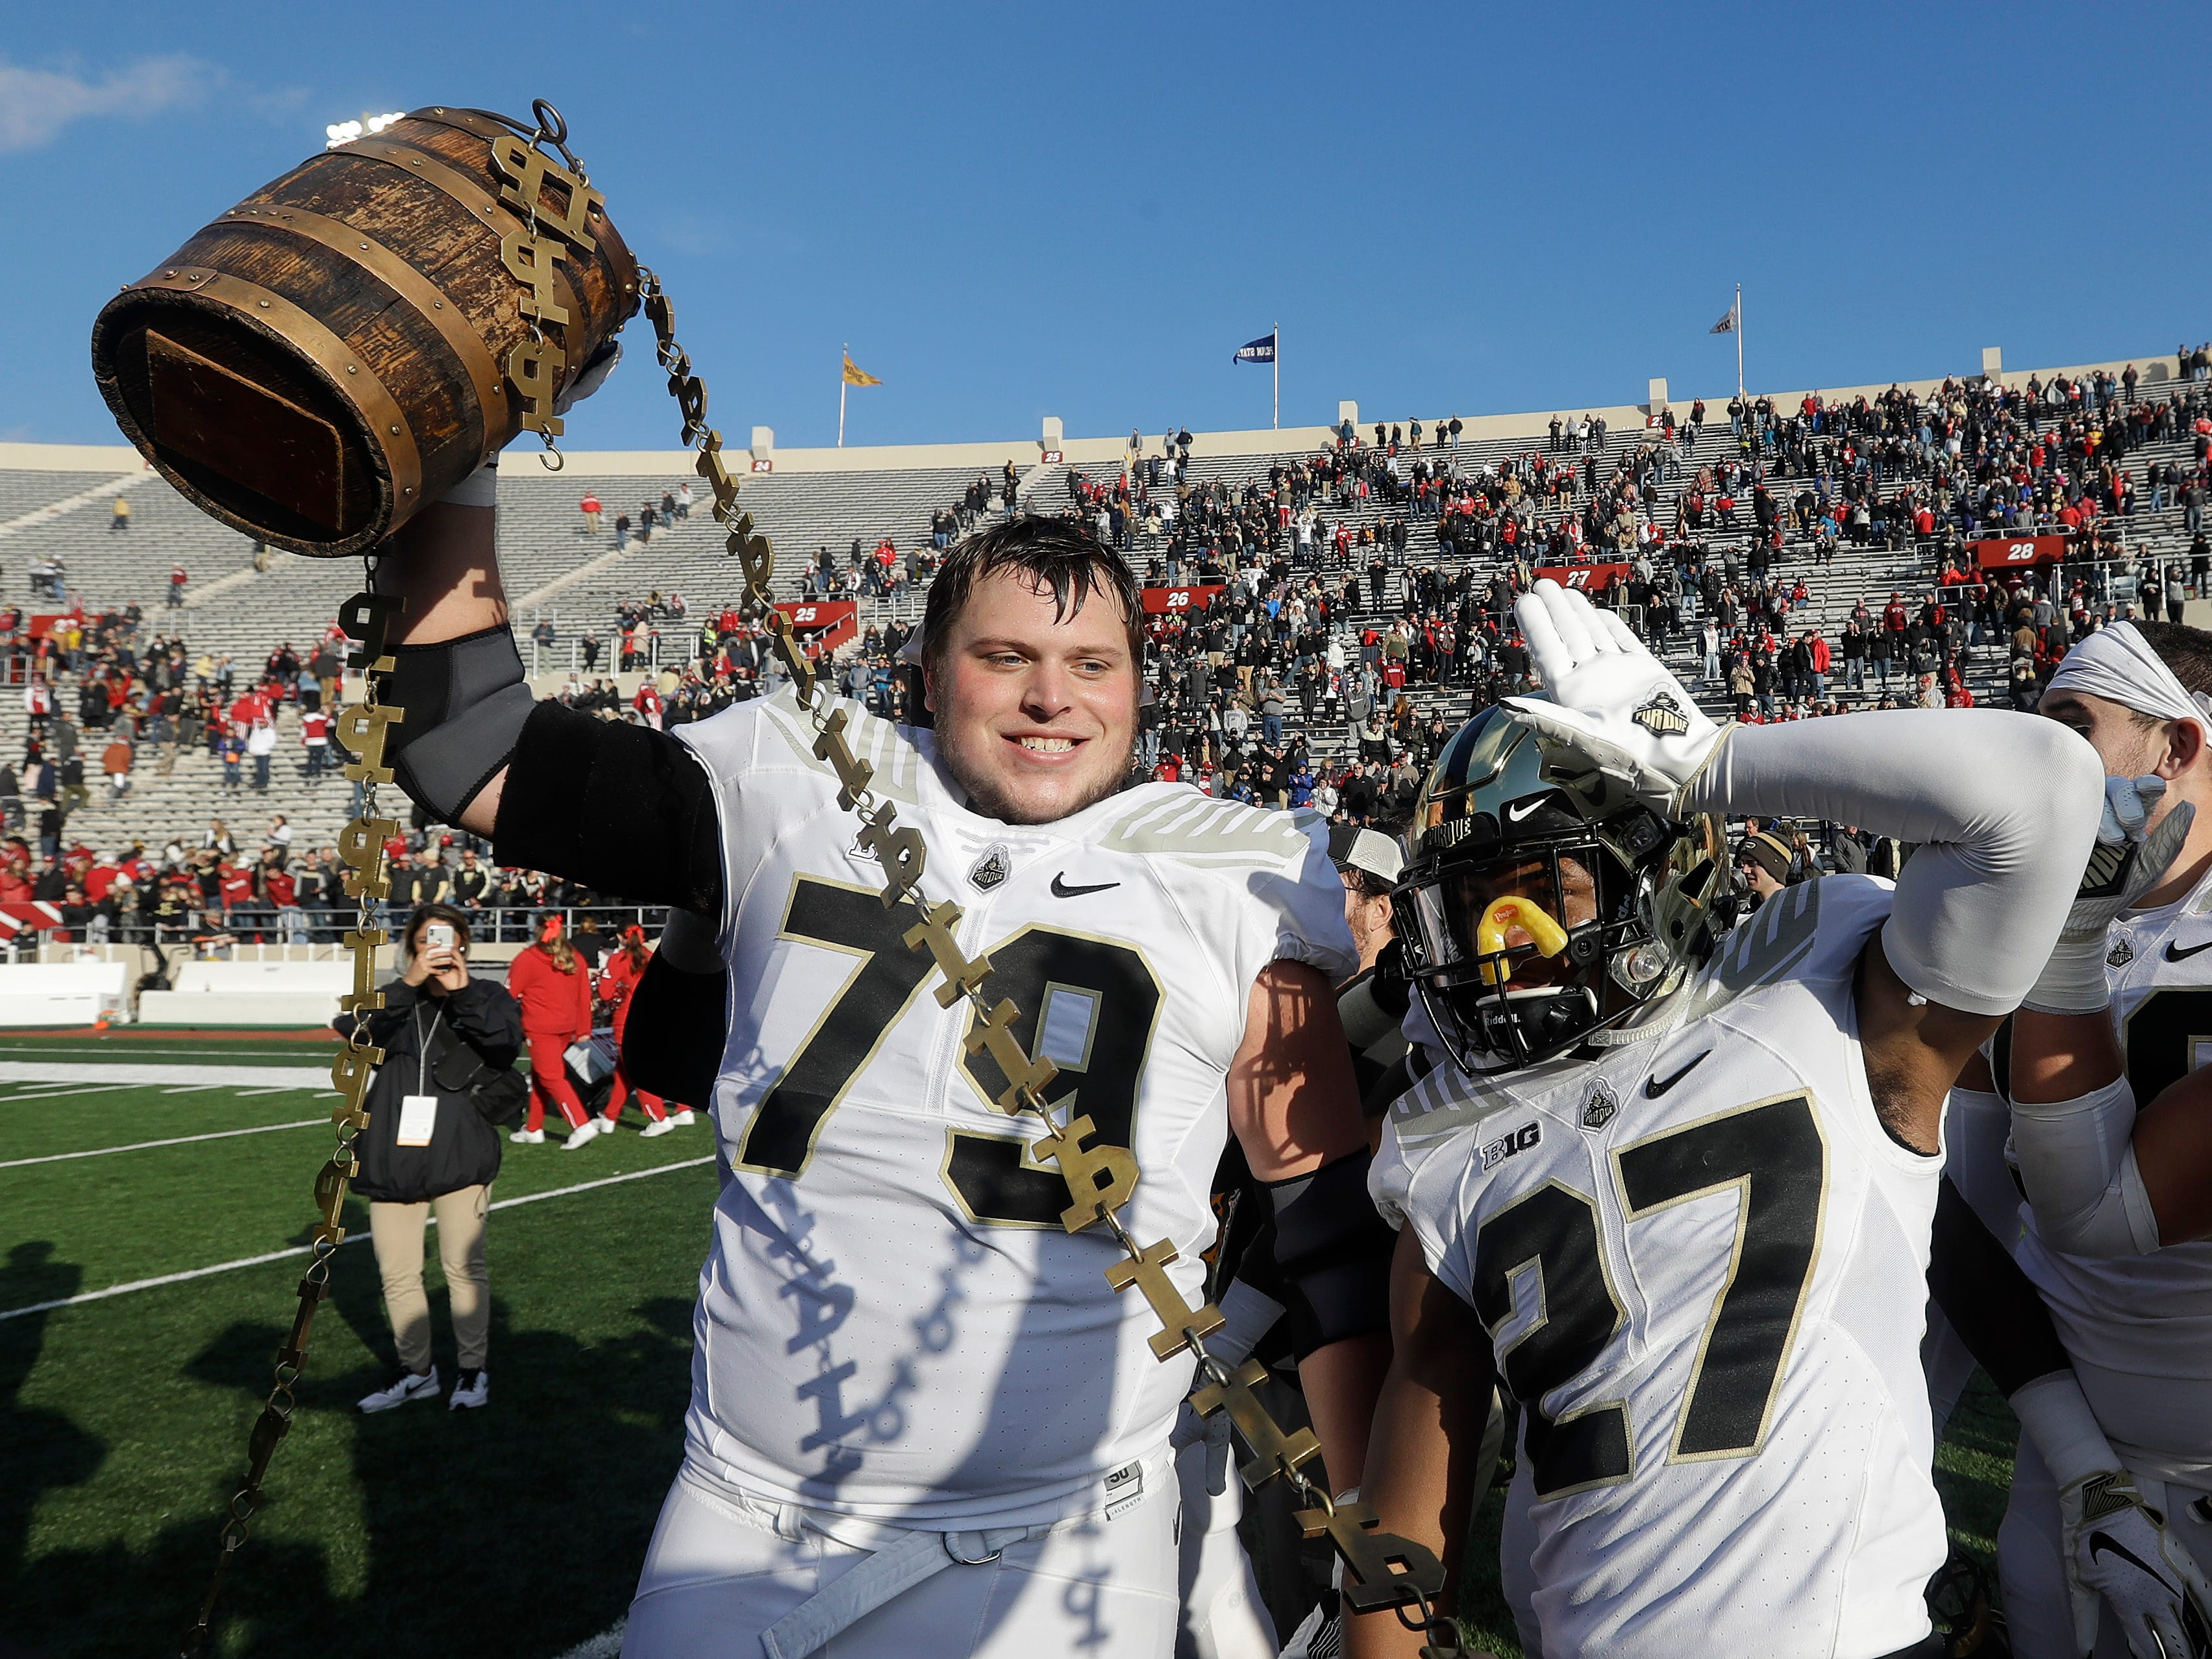 Old Oaken Bucket: Purdue's Matt McCann (79) and Navon Mosley (27) celebrates with the Old Oaken Bucket after defeating Indiana, 28-21, in Bloomington, Ind. on Nov. 24.